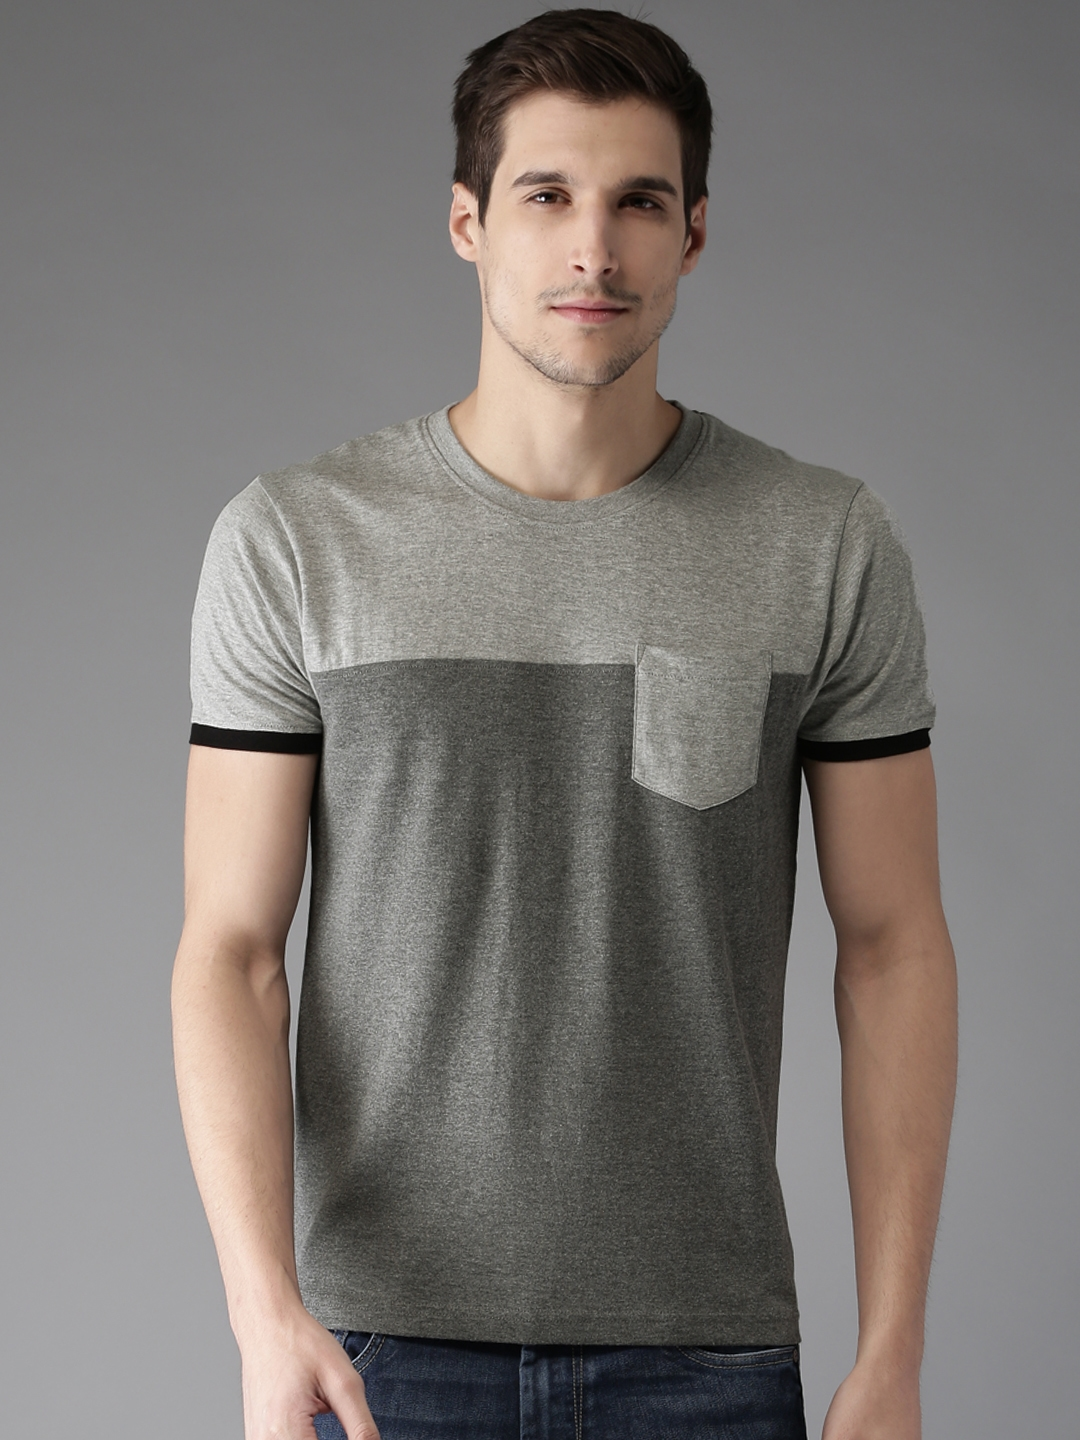 9361b3f57168 Buy Moda Rapido Men Grey Melange Solid Round Neck T Shirt - Tshirts ...